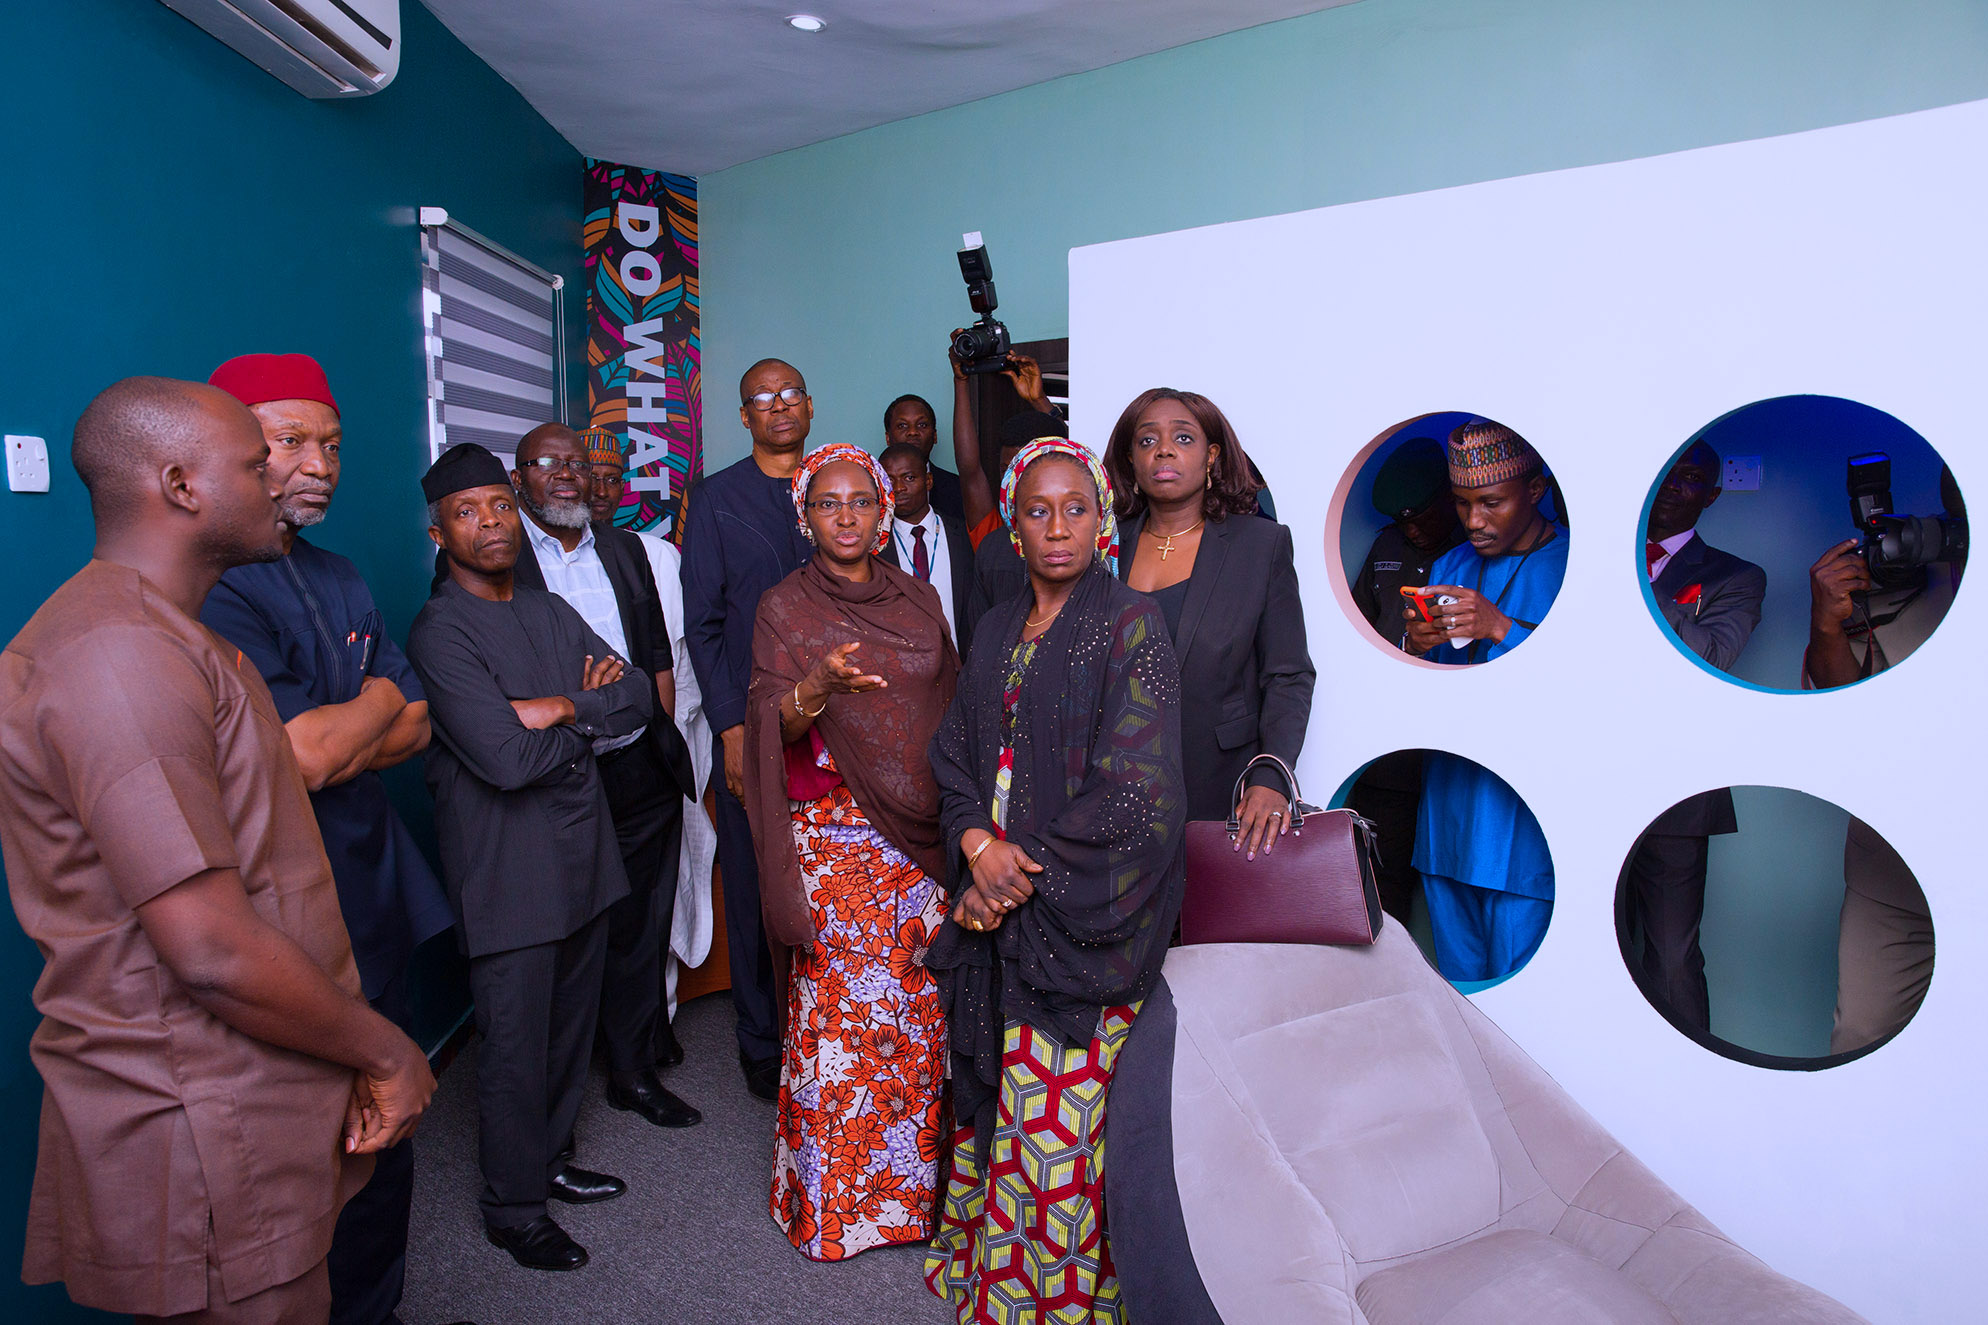 AG PRESIDENT OSINBAJO VISIT TO CIVIC INNOVATIVE LAB 1A&B. Acting President Yemi Osinbajo flanked Mnister of Communication, Adebayo Shittu, Minister of State Minister Industry, Trade and Investment , Aisha Abubakar, Minister of Industry, Trade and Investment, Mr Okechukwu Enelamah, Minister of Budget and National Planning, Senator Udoa Udo Udoma, FCT Minister Alh Muhammad Musa Bello and Minister of Finance, Mrs Kemi Adesoun durng a visit to the Civi Innovation Lab Centre in Abuja. PHOTO; SUNDAY AGHAEZE. june 28 2017.